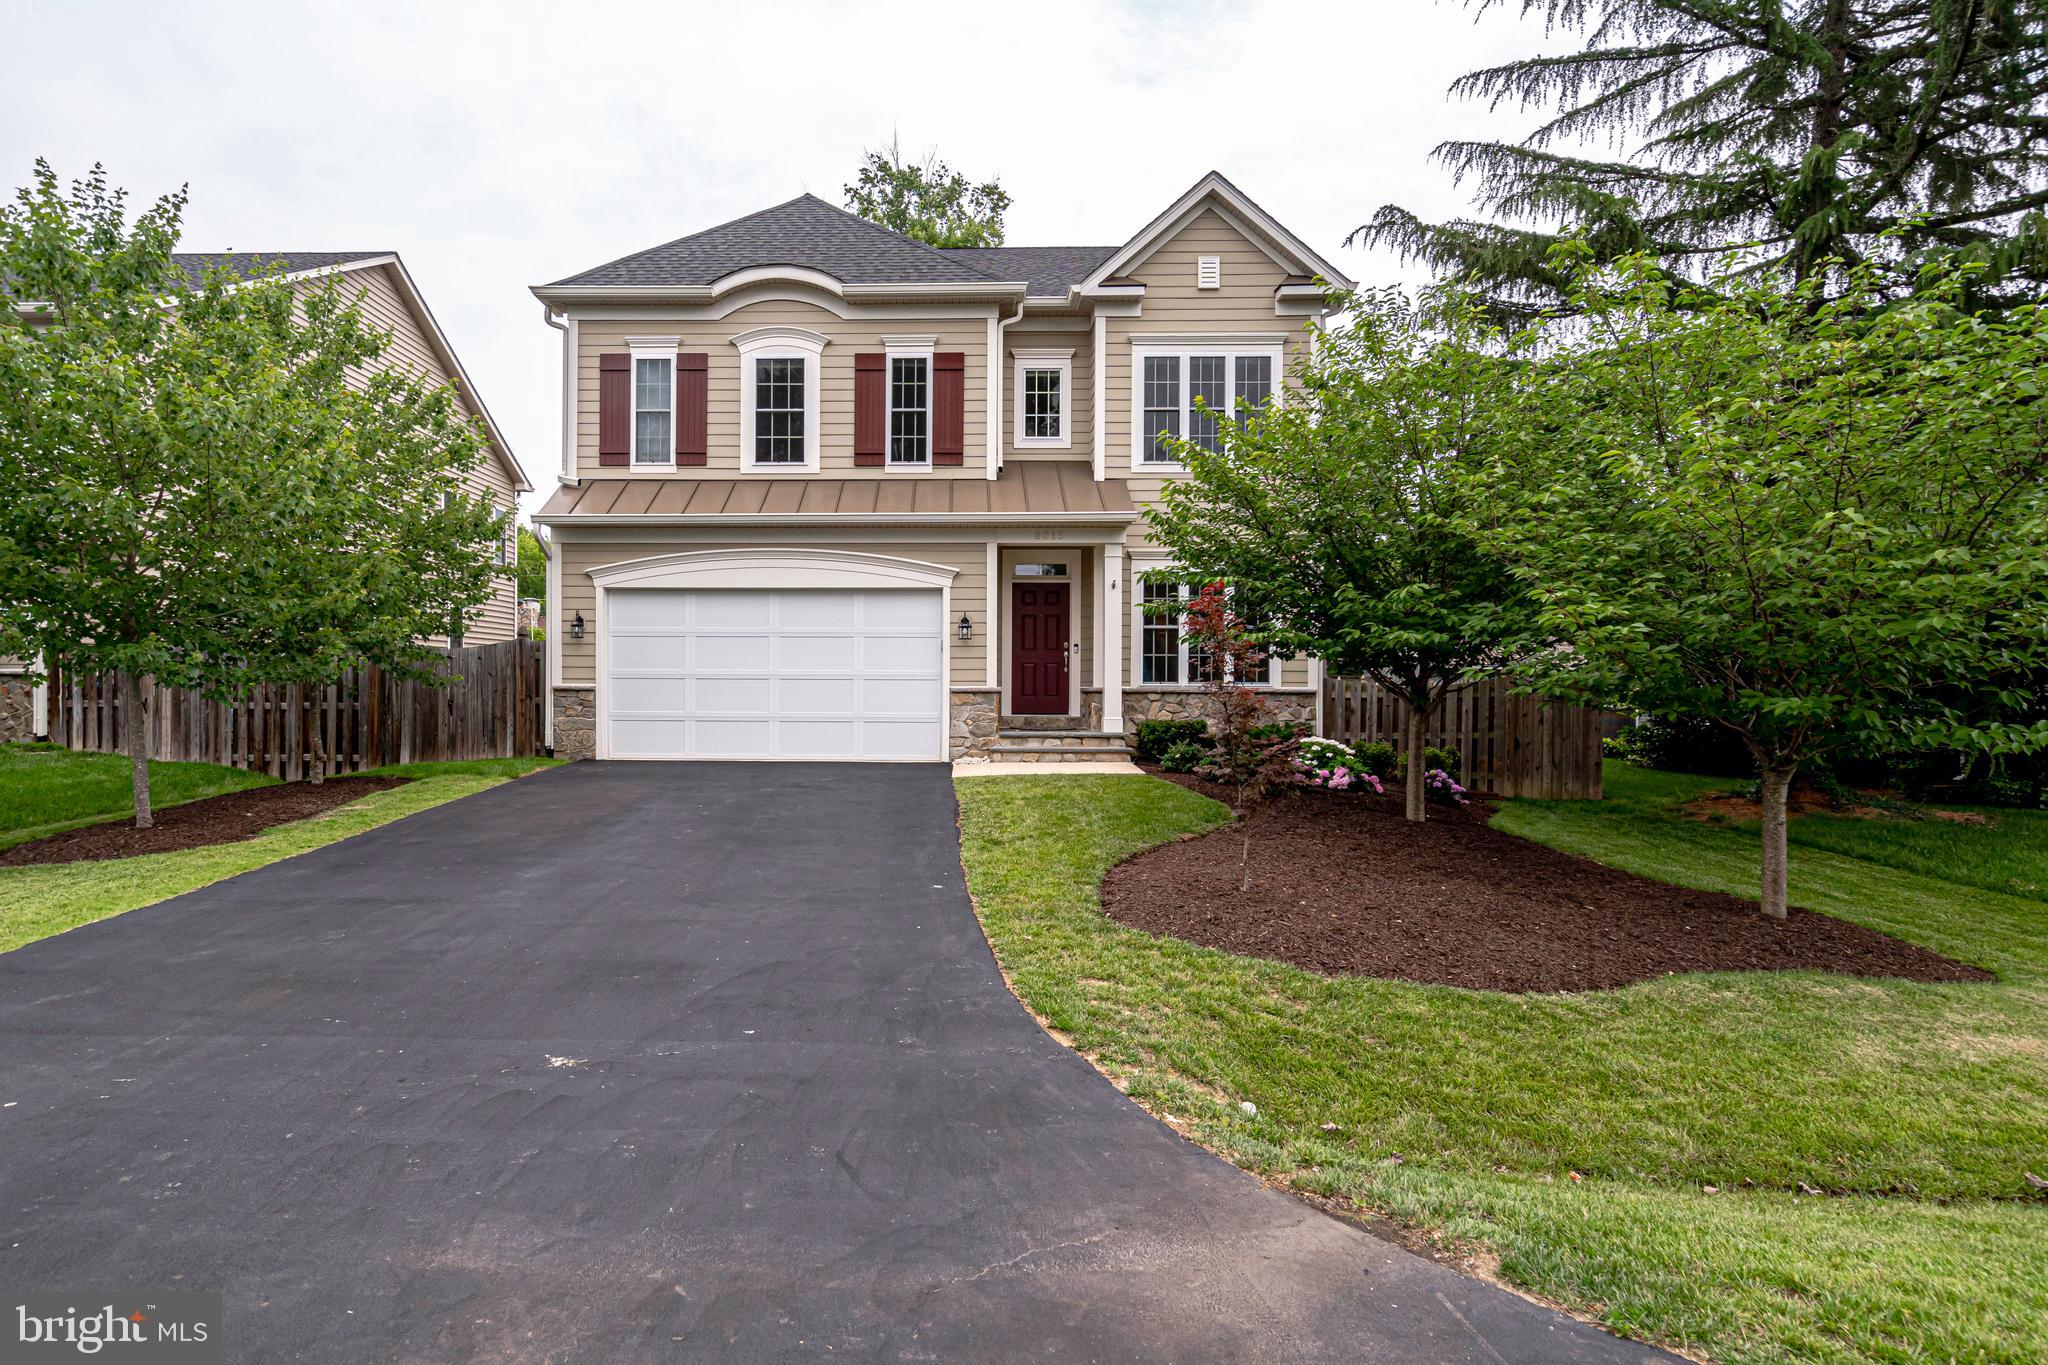 Like-new home in Hollin Hall on an extra-wide lot! 5 bedrooms, 4.5 bathrooms. Spacious, open layout with a gourmet kitchen, master suite and fully finished lower level.